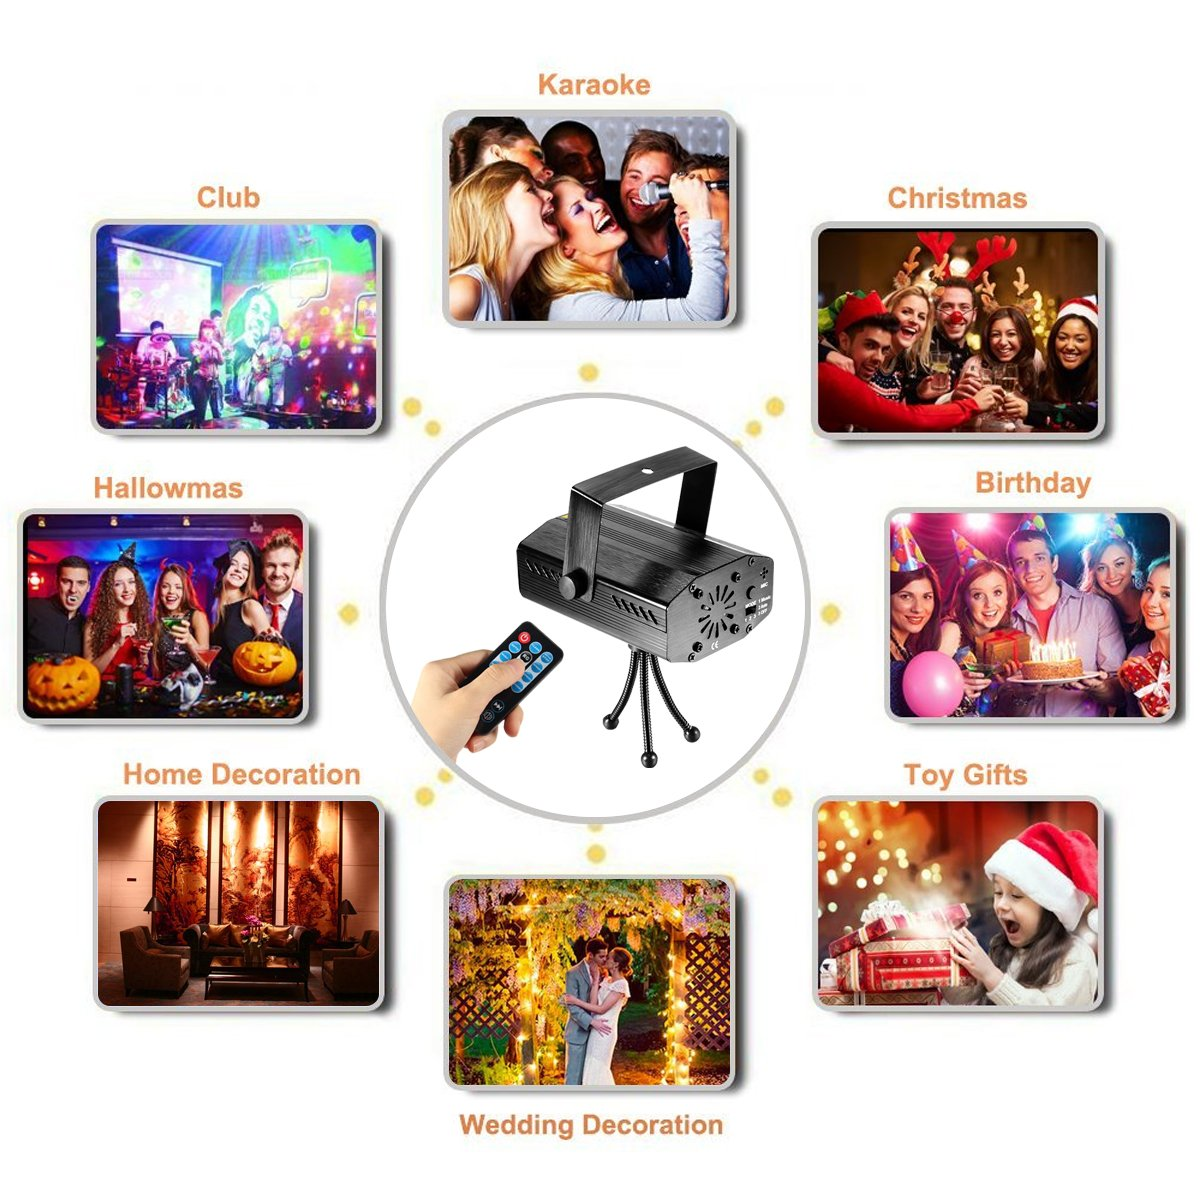 LED Projector Laser Lights Blingco Mini Auto Flash RG Led Stage Lights Sound Activated for DJ Disco Party Home Show Birthday Party Wedding Stage Lighting with Remote Control Black